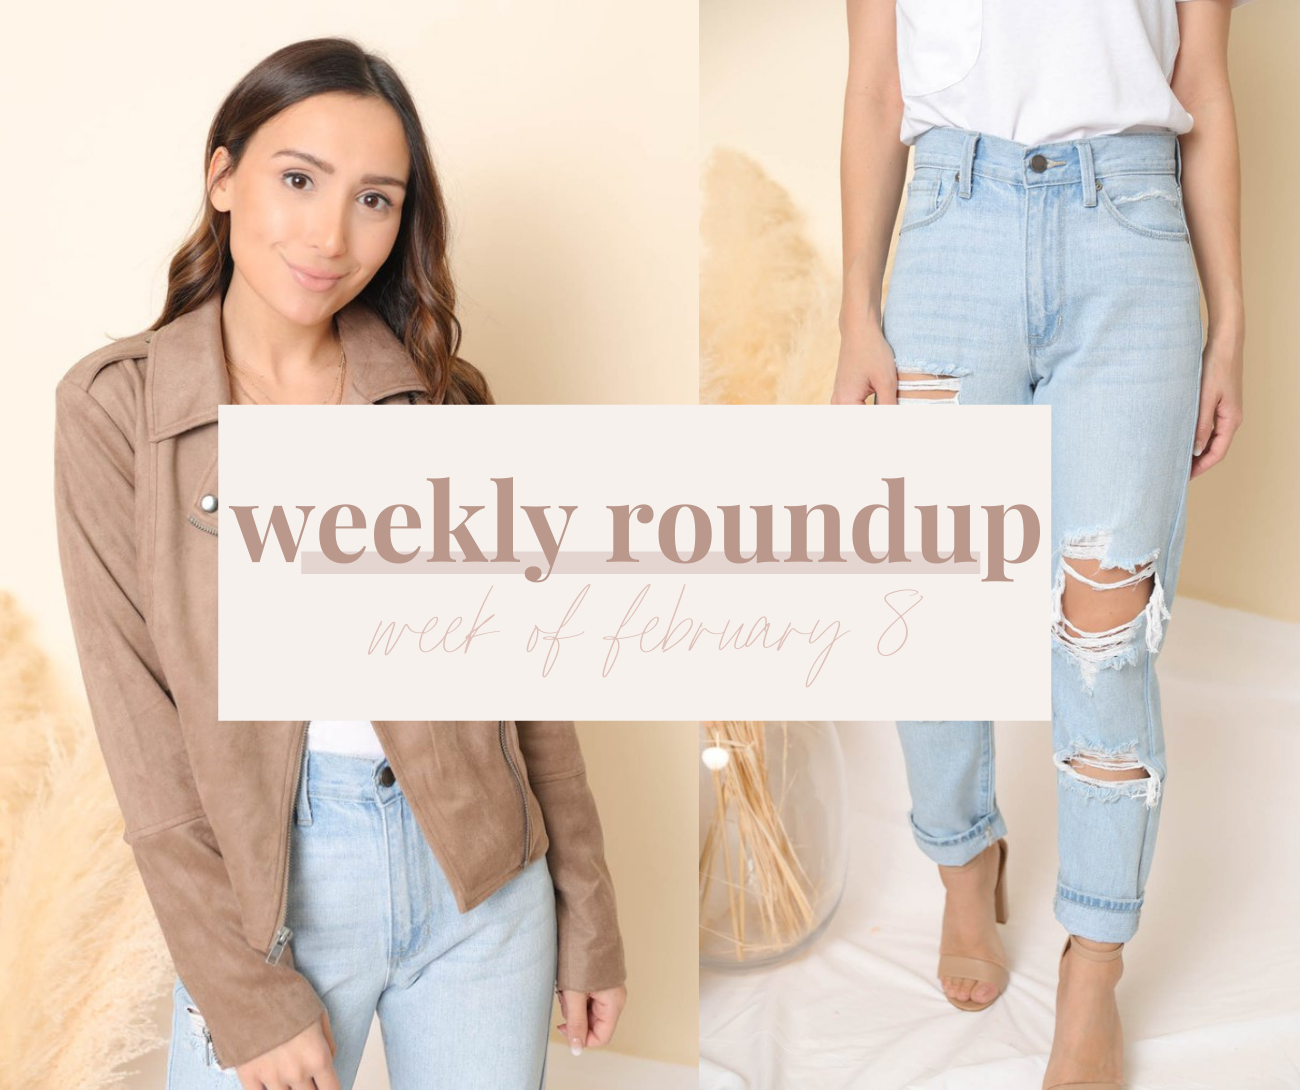 Weekly Roundup - Week of January 8